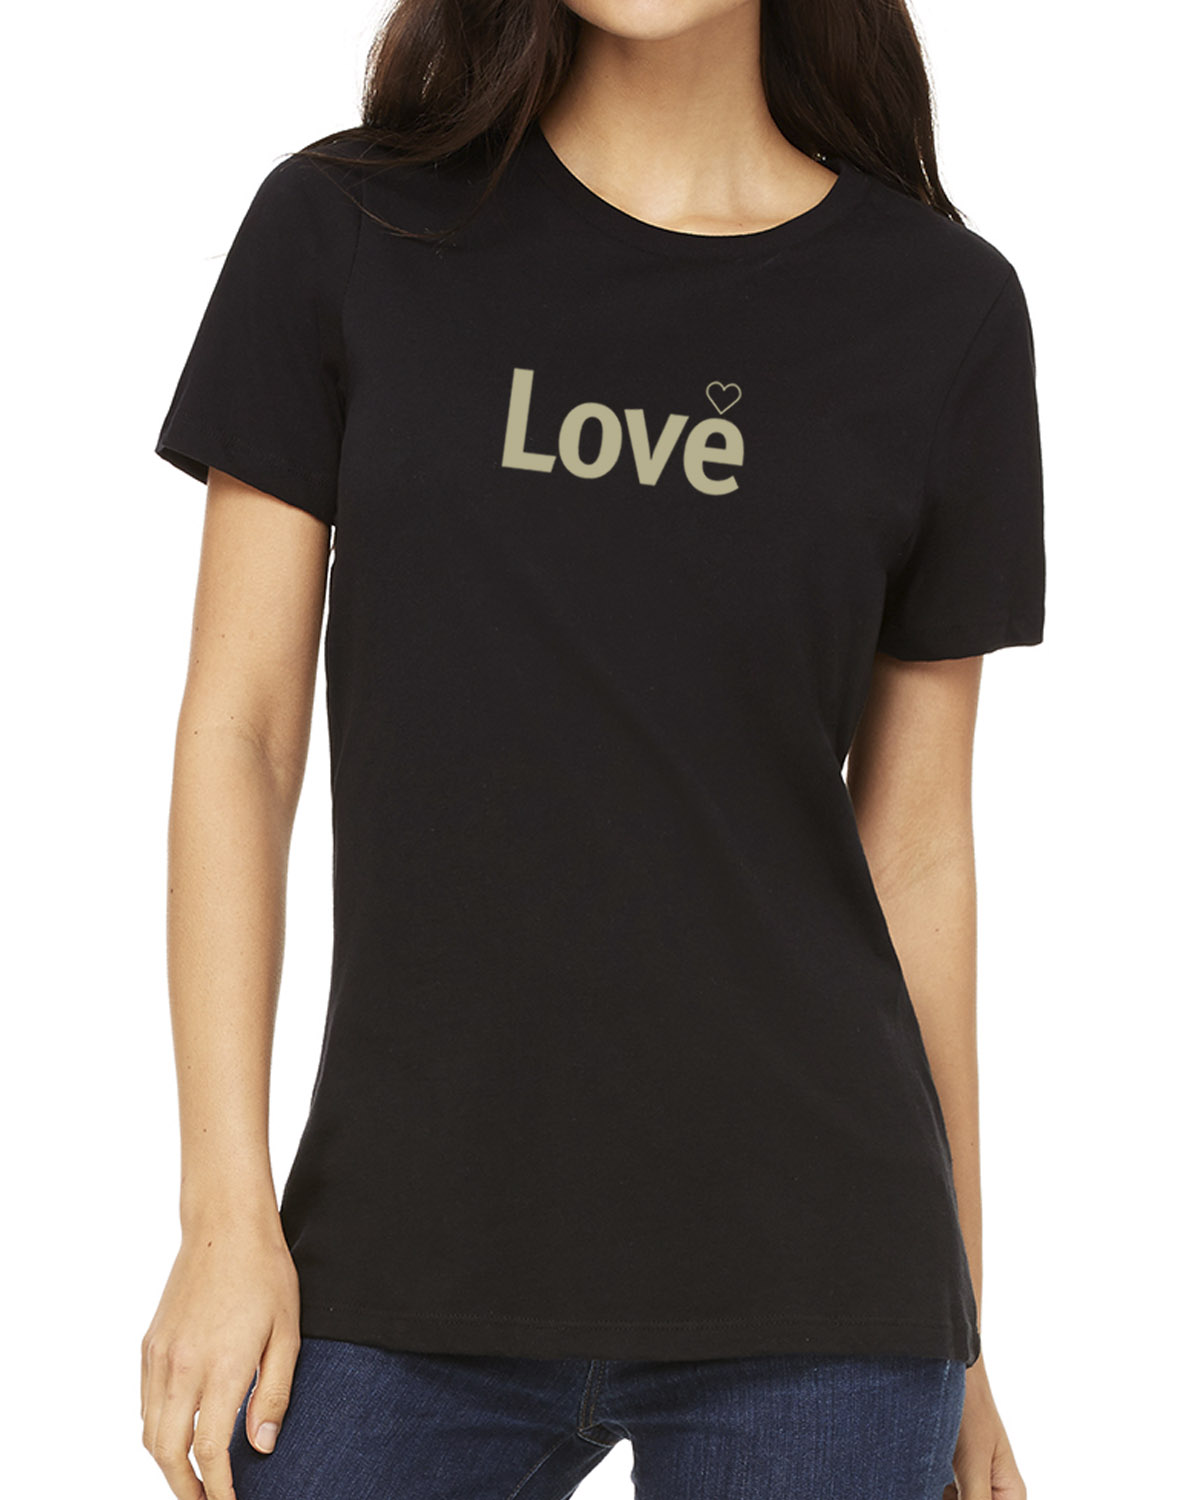 Short sleeve Love T-shirt for women (black)